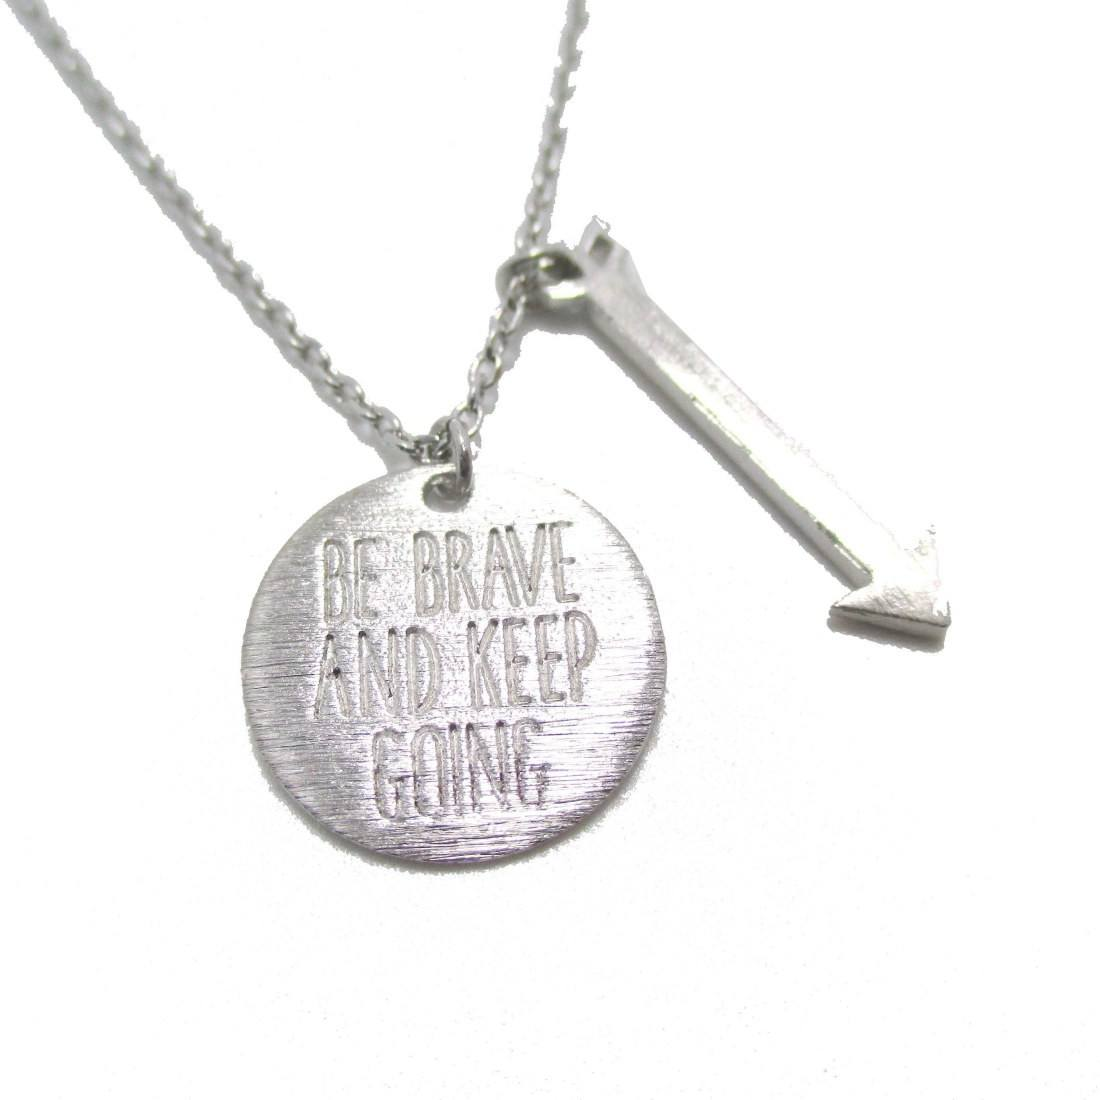 Be Brave and Keep Going Quote Charm Necklace in Silver